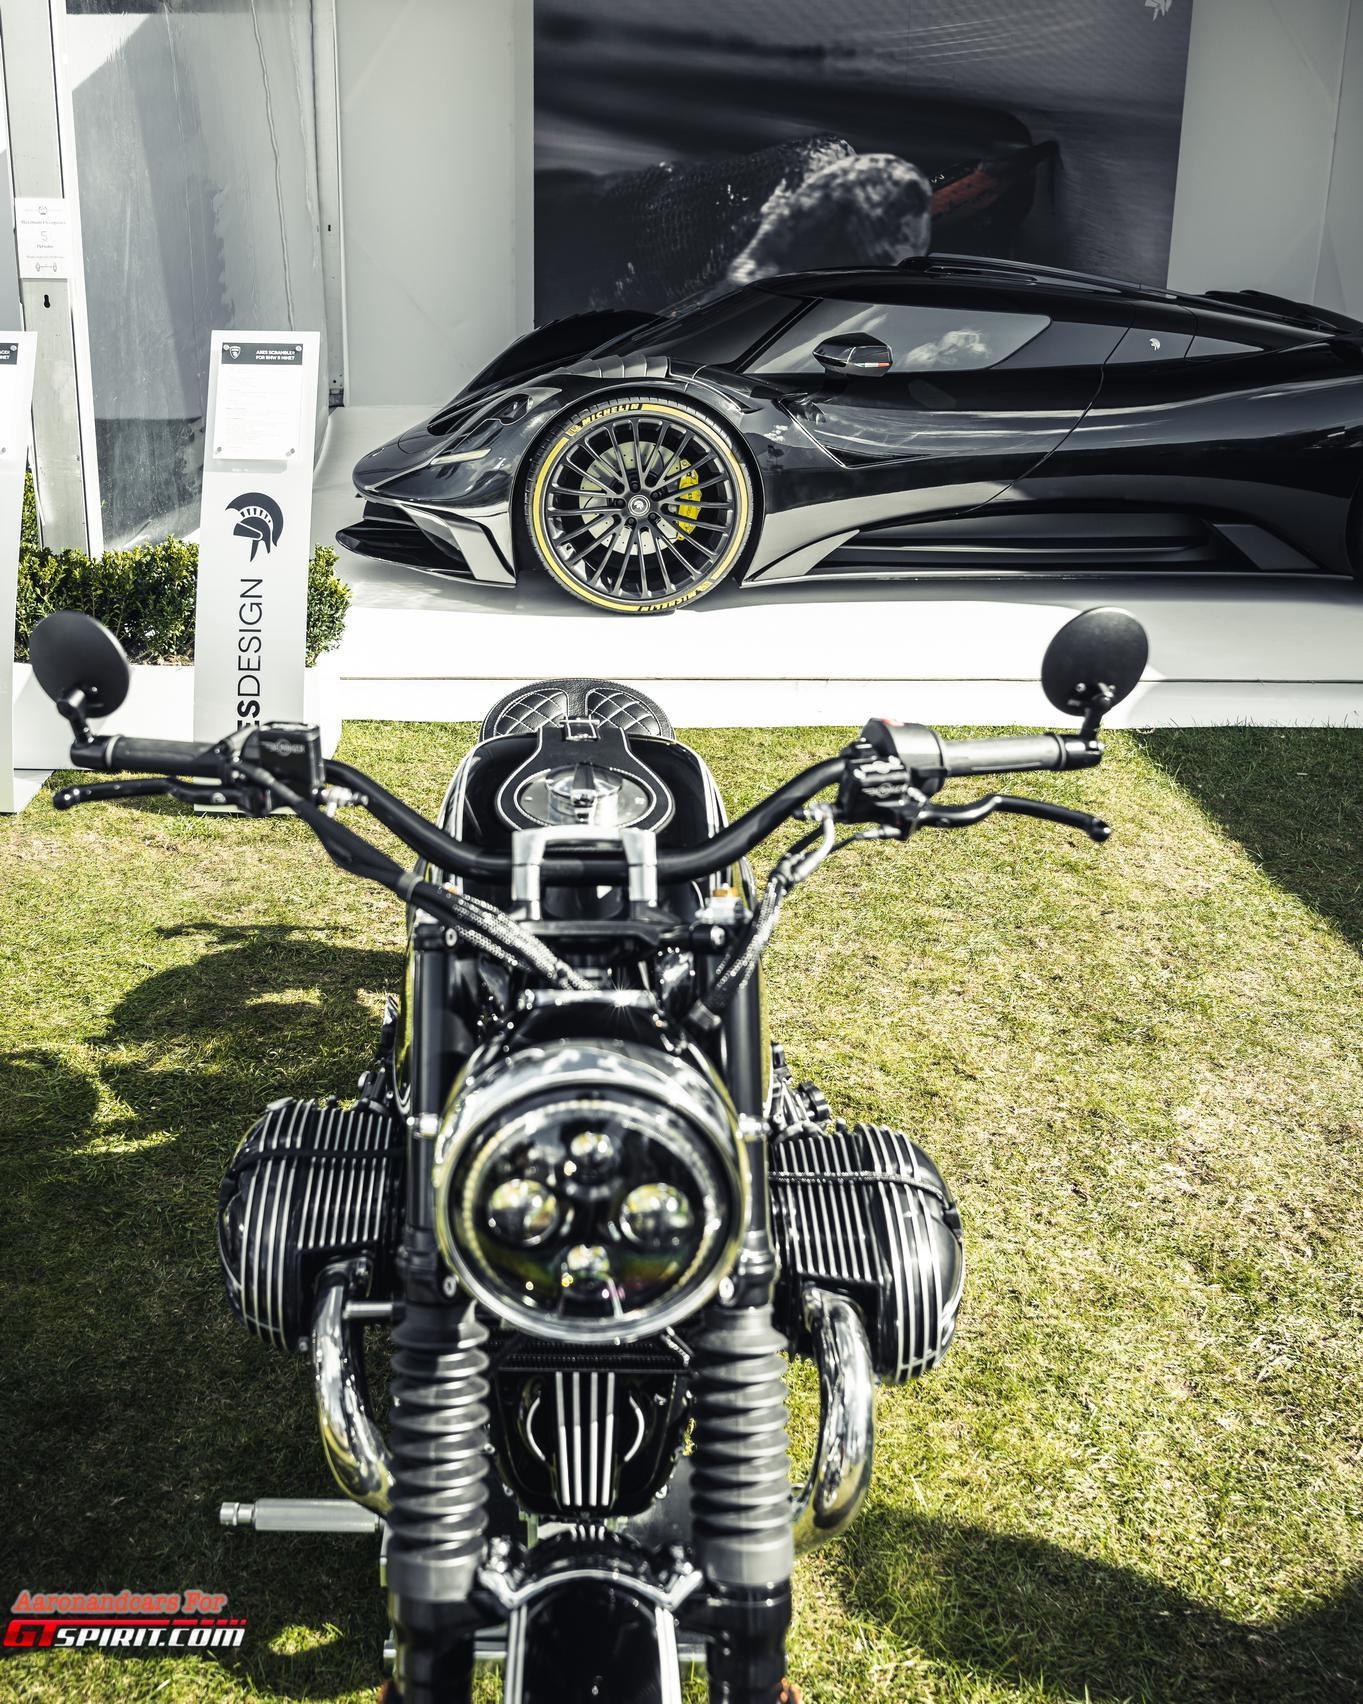 Salon Prive 2020 Motorcycle